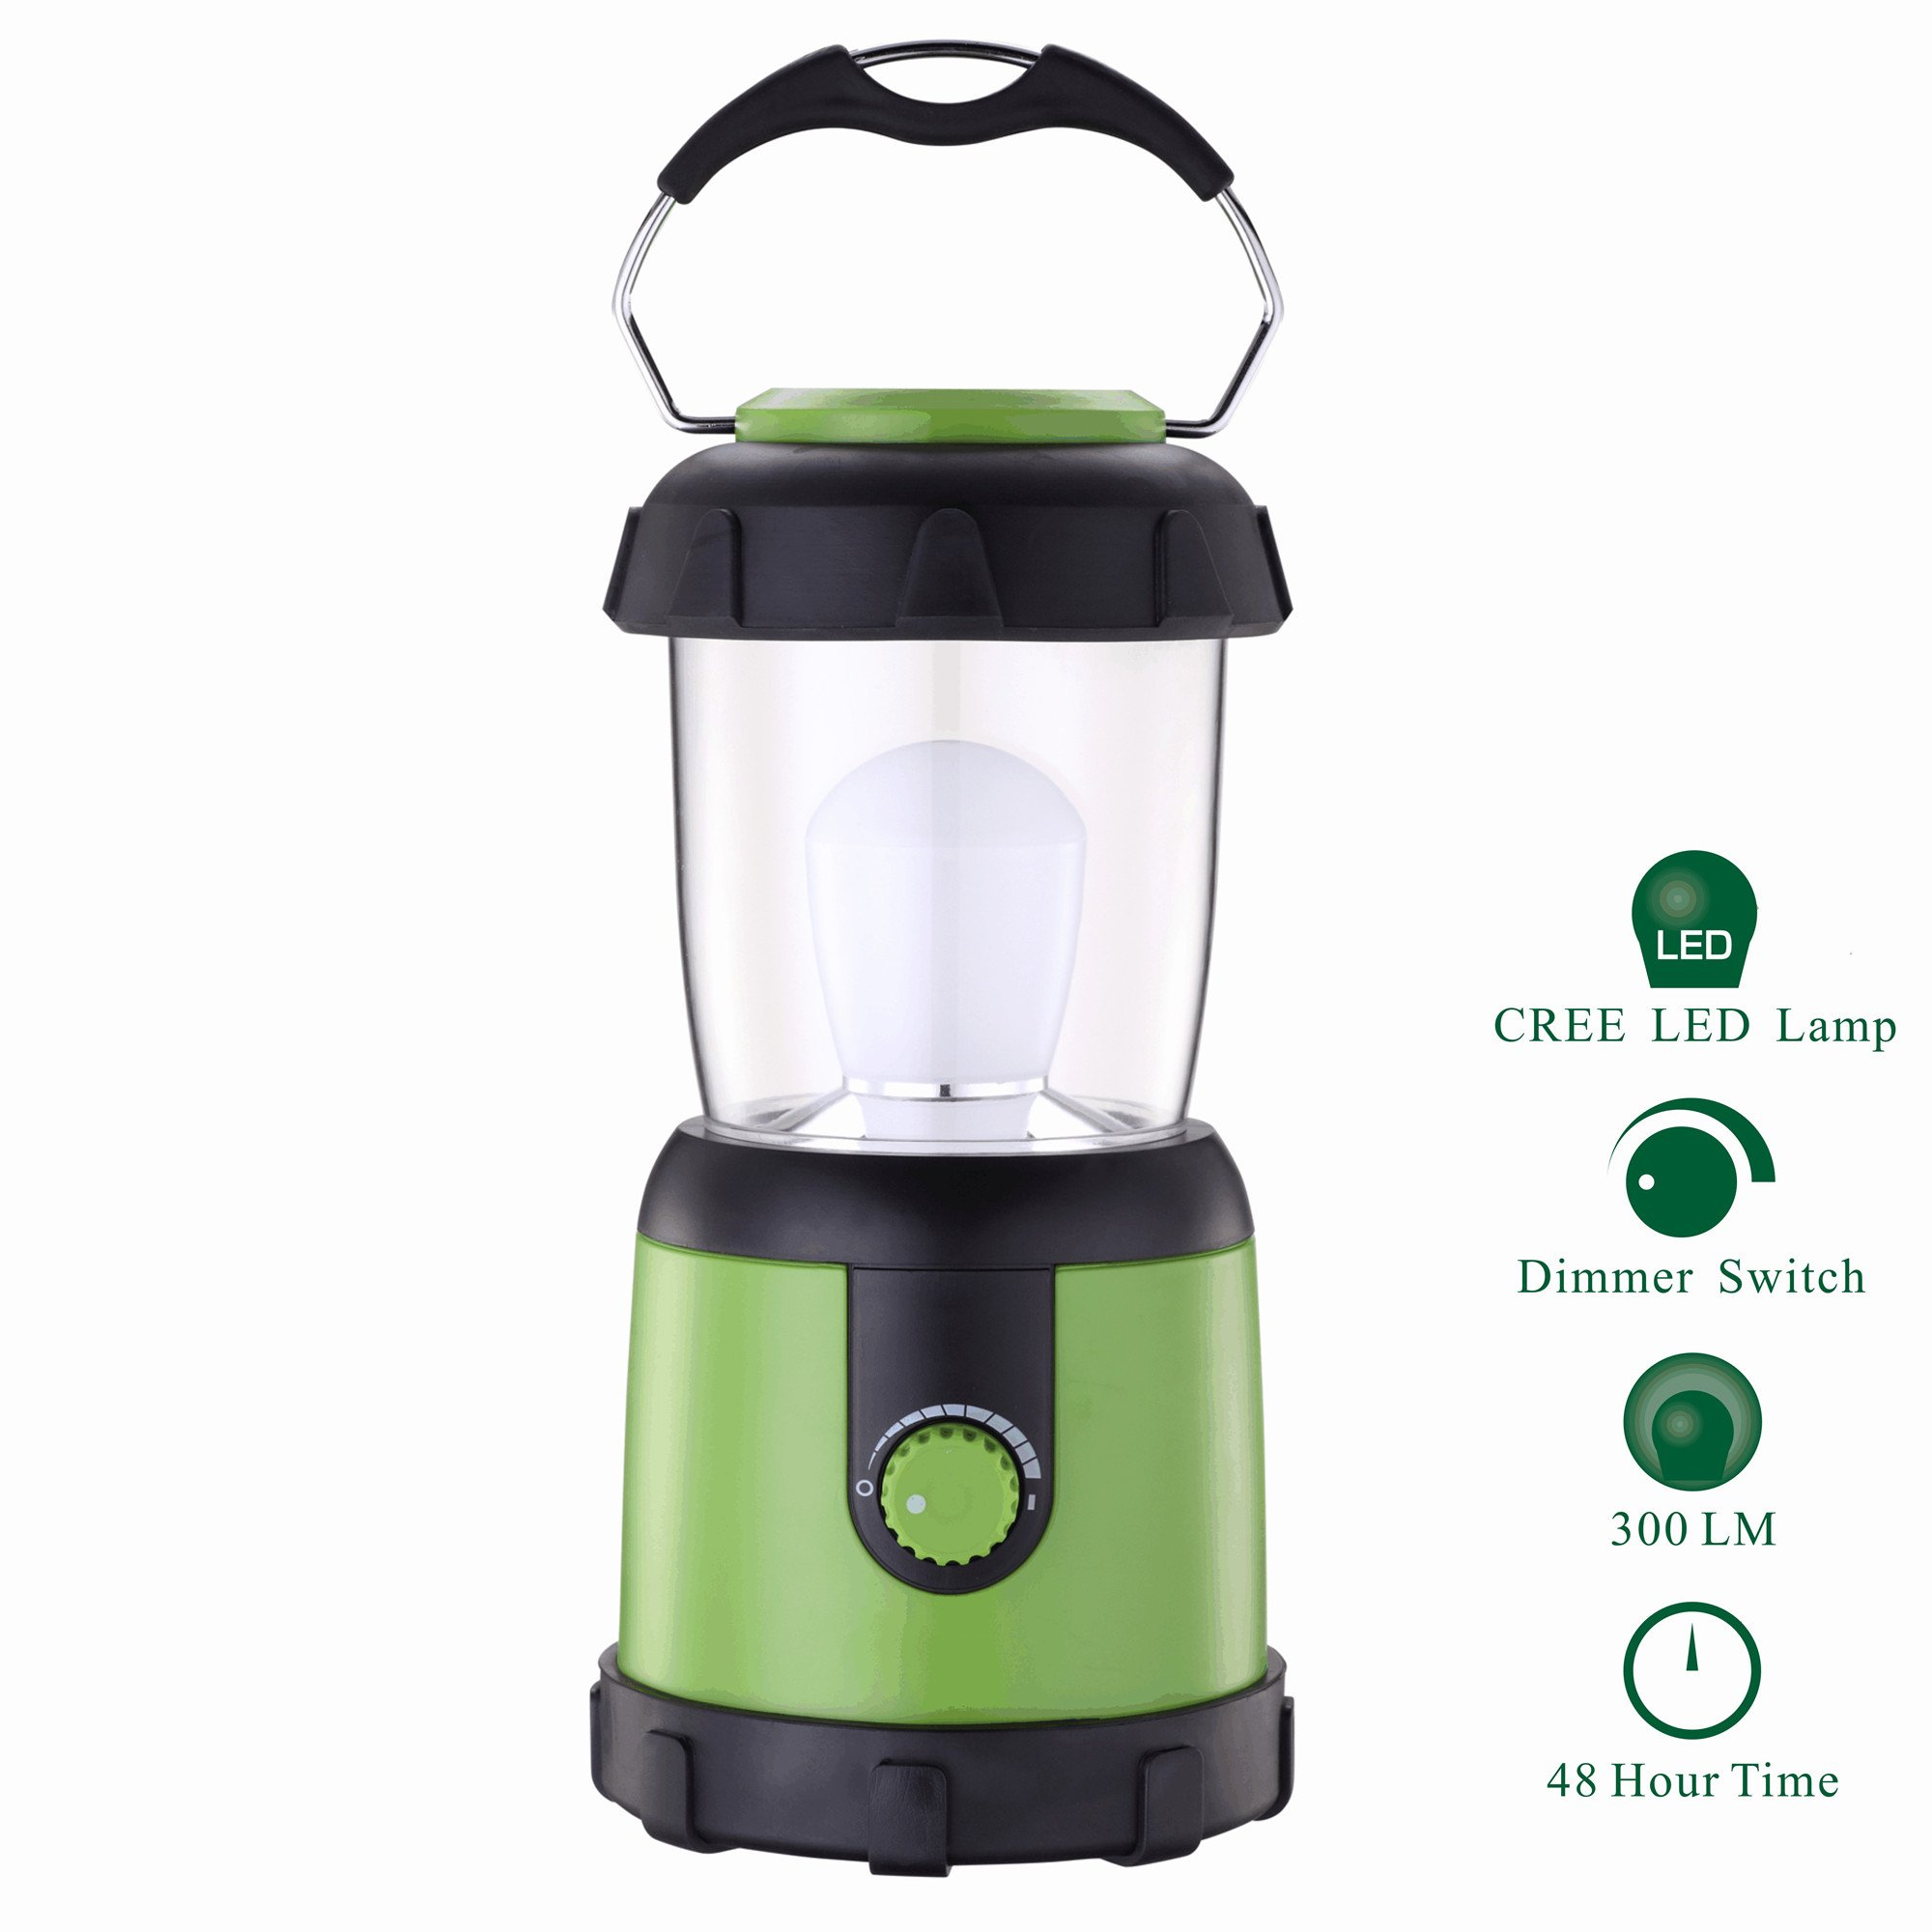 LED Camping Lantern with Dimmer Switch, Water Resistant Portable Flashlight Lantern for Camping, Emergency, Hurricane(4 D Battery Powered)